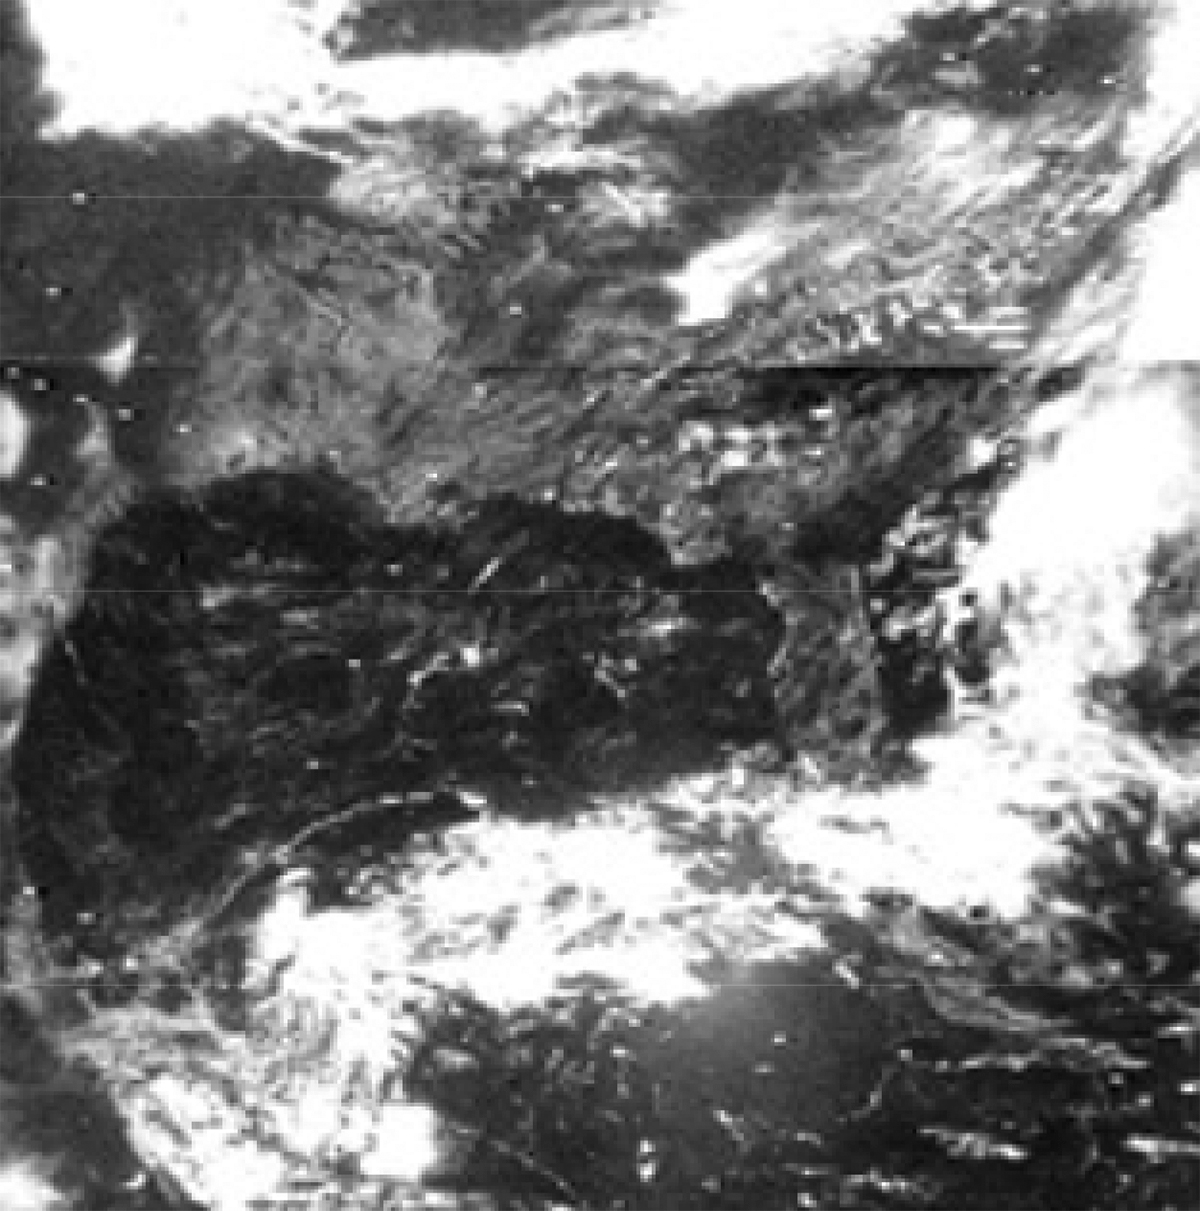 Nimbus-3 image showing clouds over the southeastern U.S.